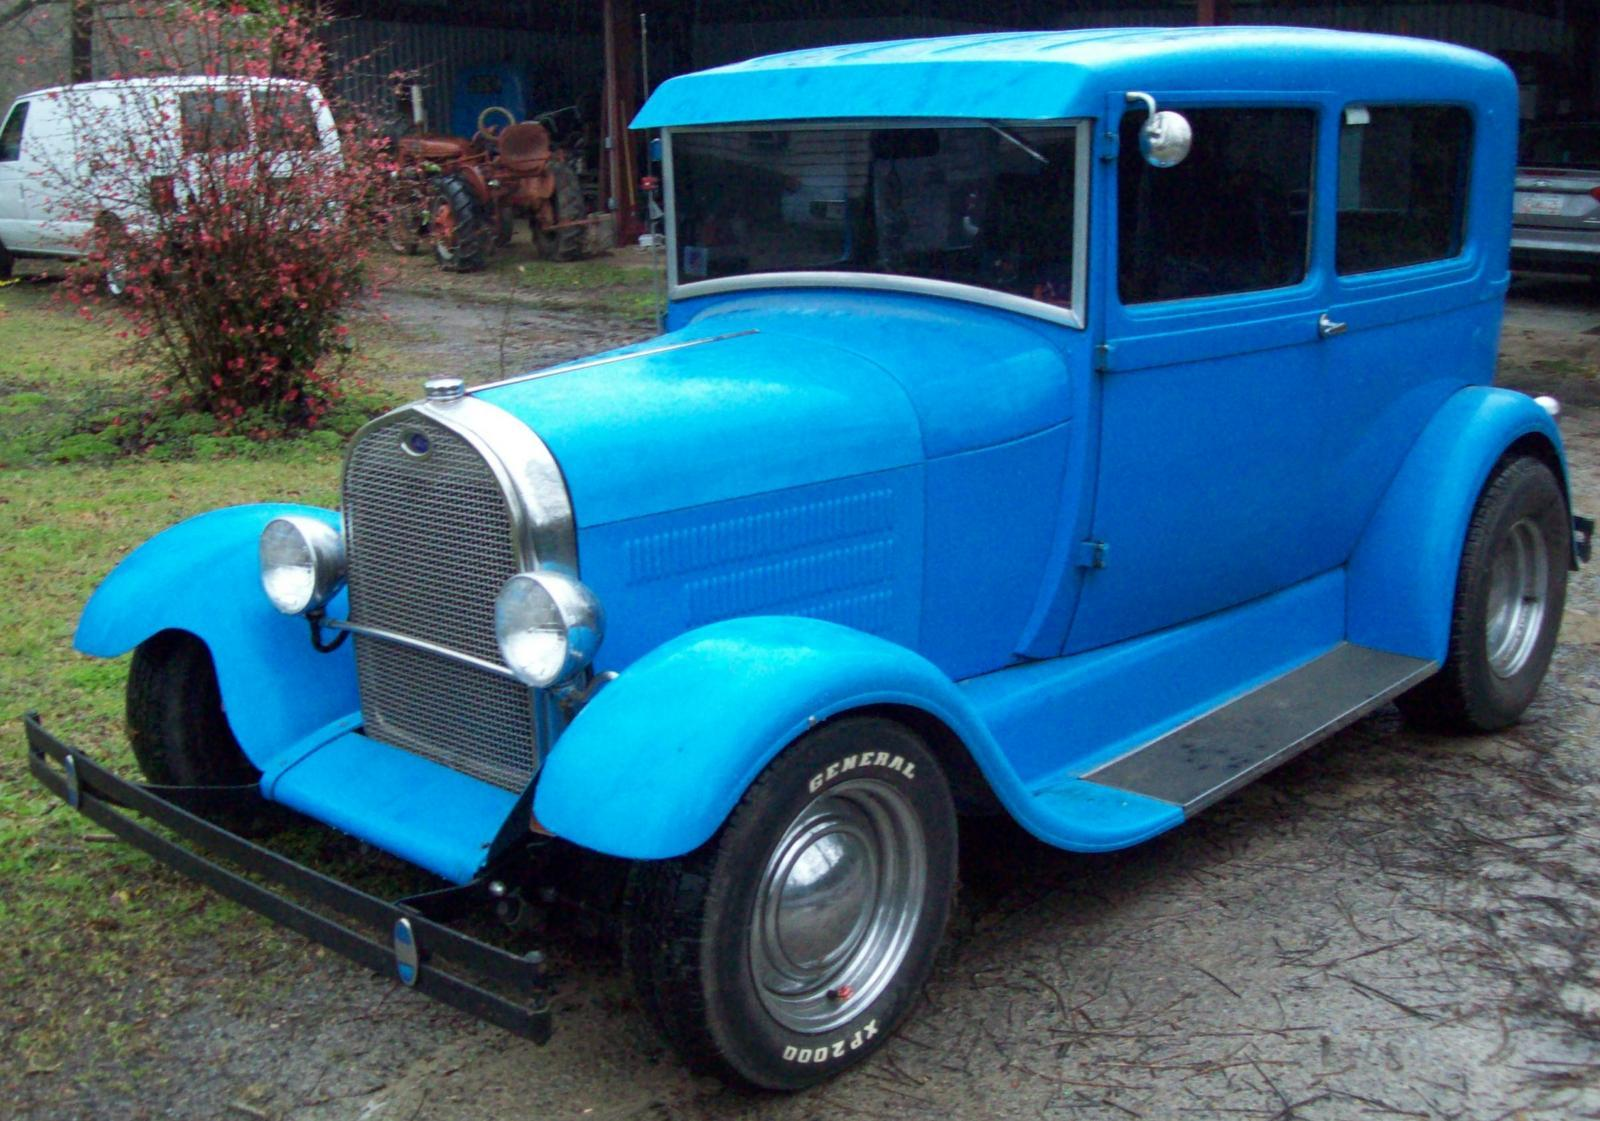 32 1929_ford_model_a_100571658878923381